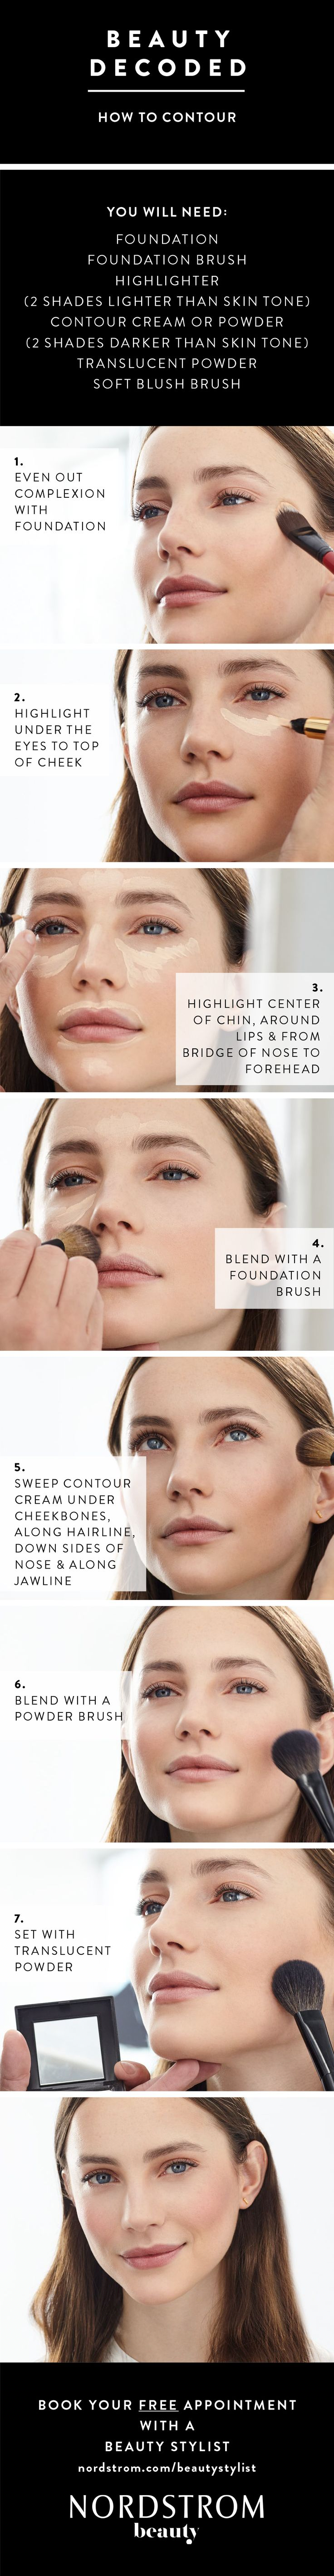 Pro tips from the Nordstrom beauty team on how to contour with makeup. All you need is foundation, a foundation brush, highlighter, contour cream or powder, translucent powder and a soft blush brush. Seven easy steps to make your cheekbones pop!